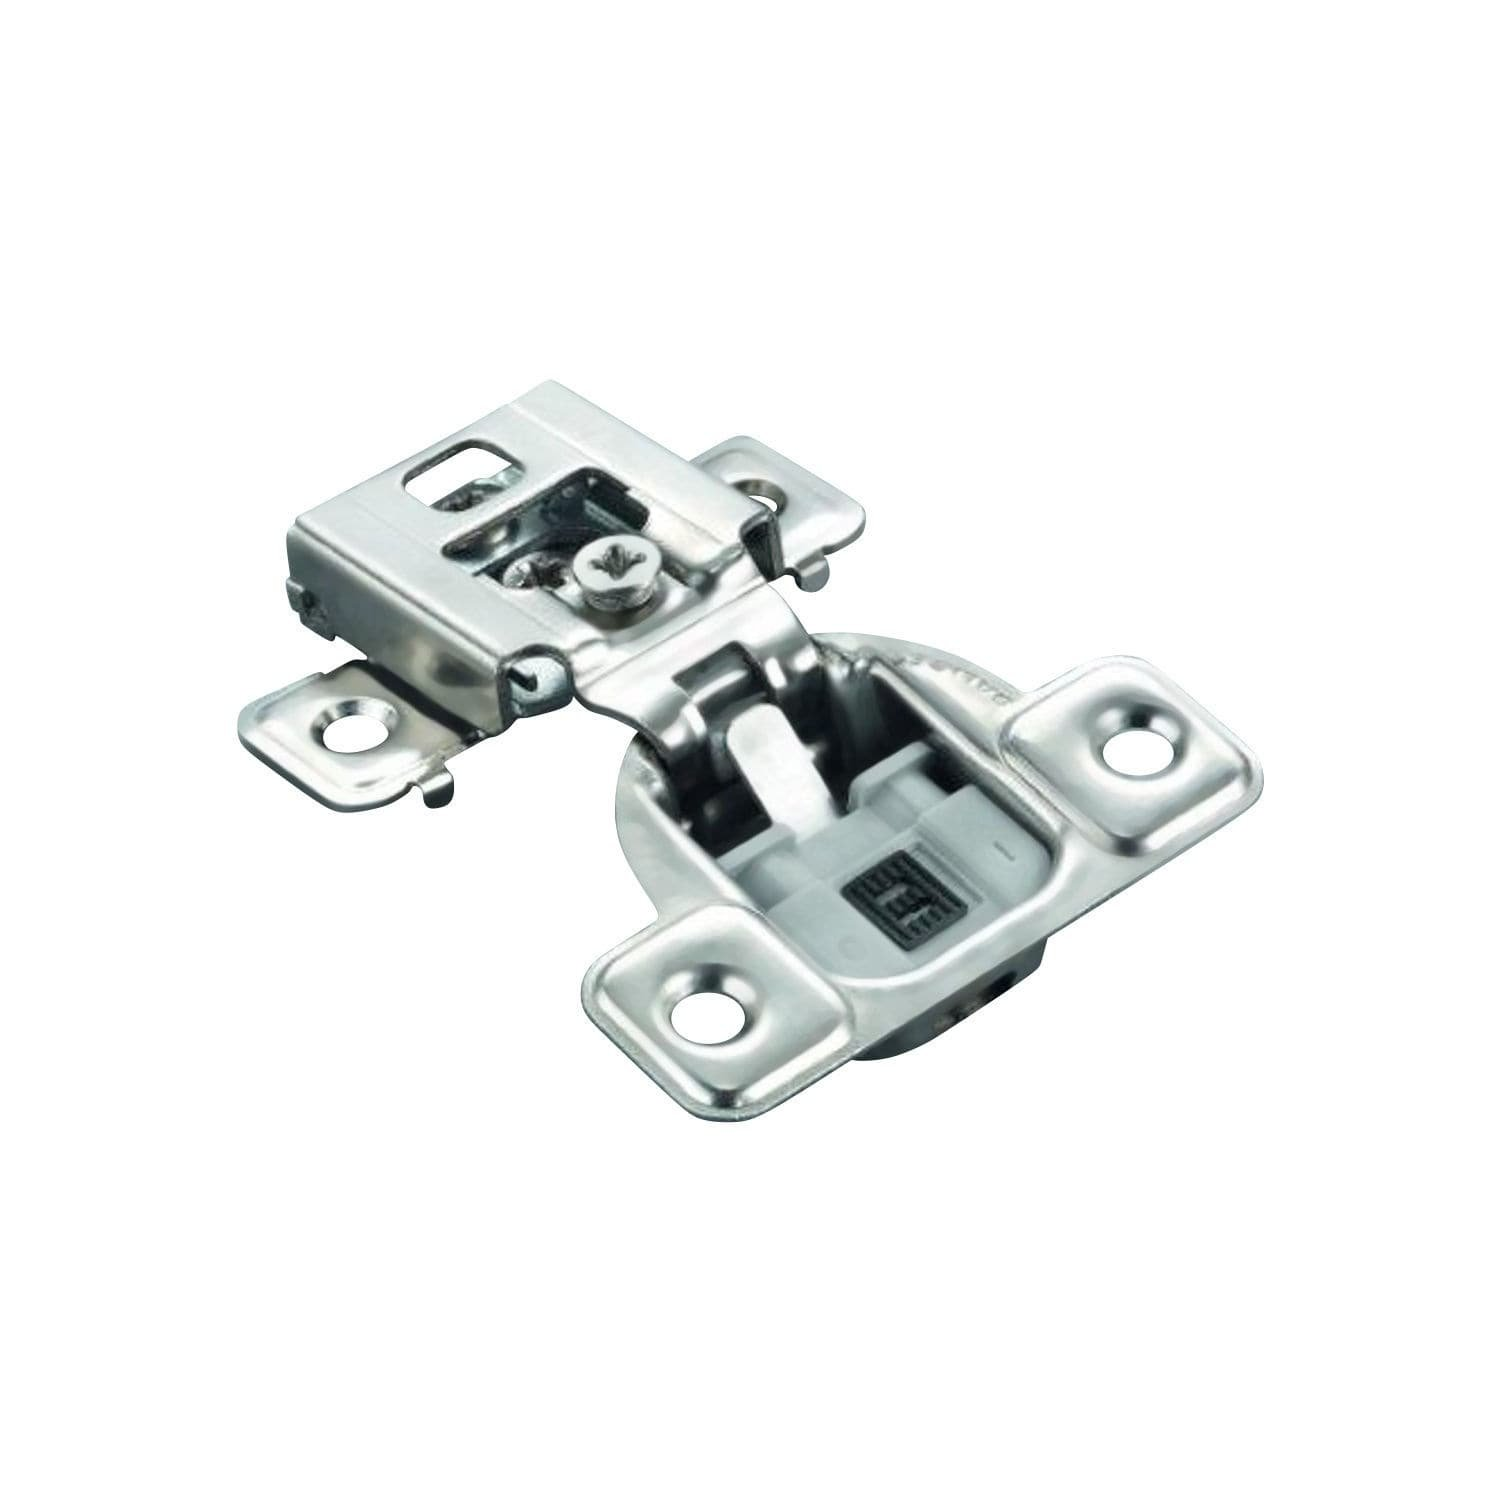 Salice Silver-finished Stamped Steel 1/2-inch 106-degree Overlay Soft-close Knock-in Face-frame Hinges (Case of 25)